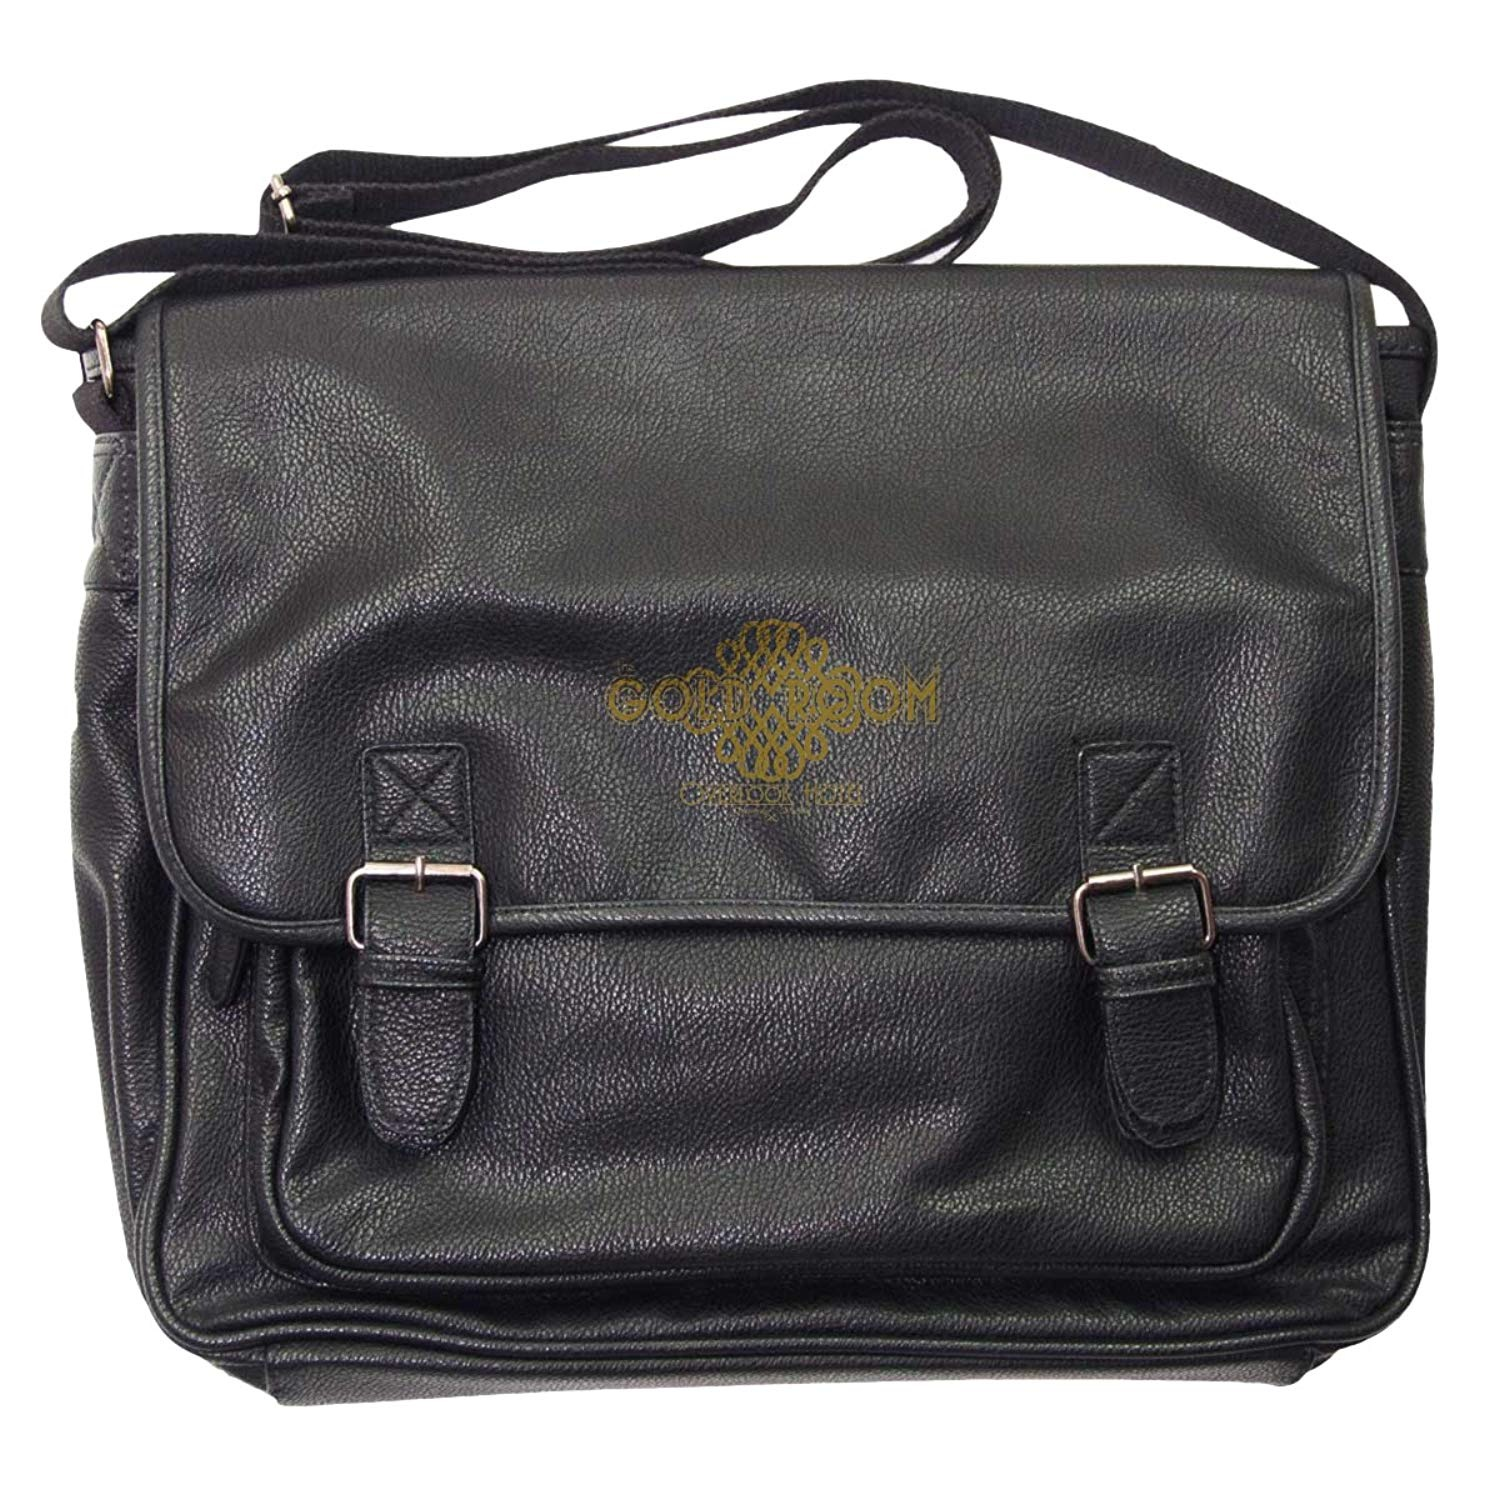 ded8f8671b Converse Messenger Bag Bags: Buy Online from Fishpond.co.nz